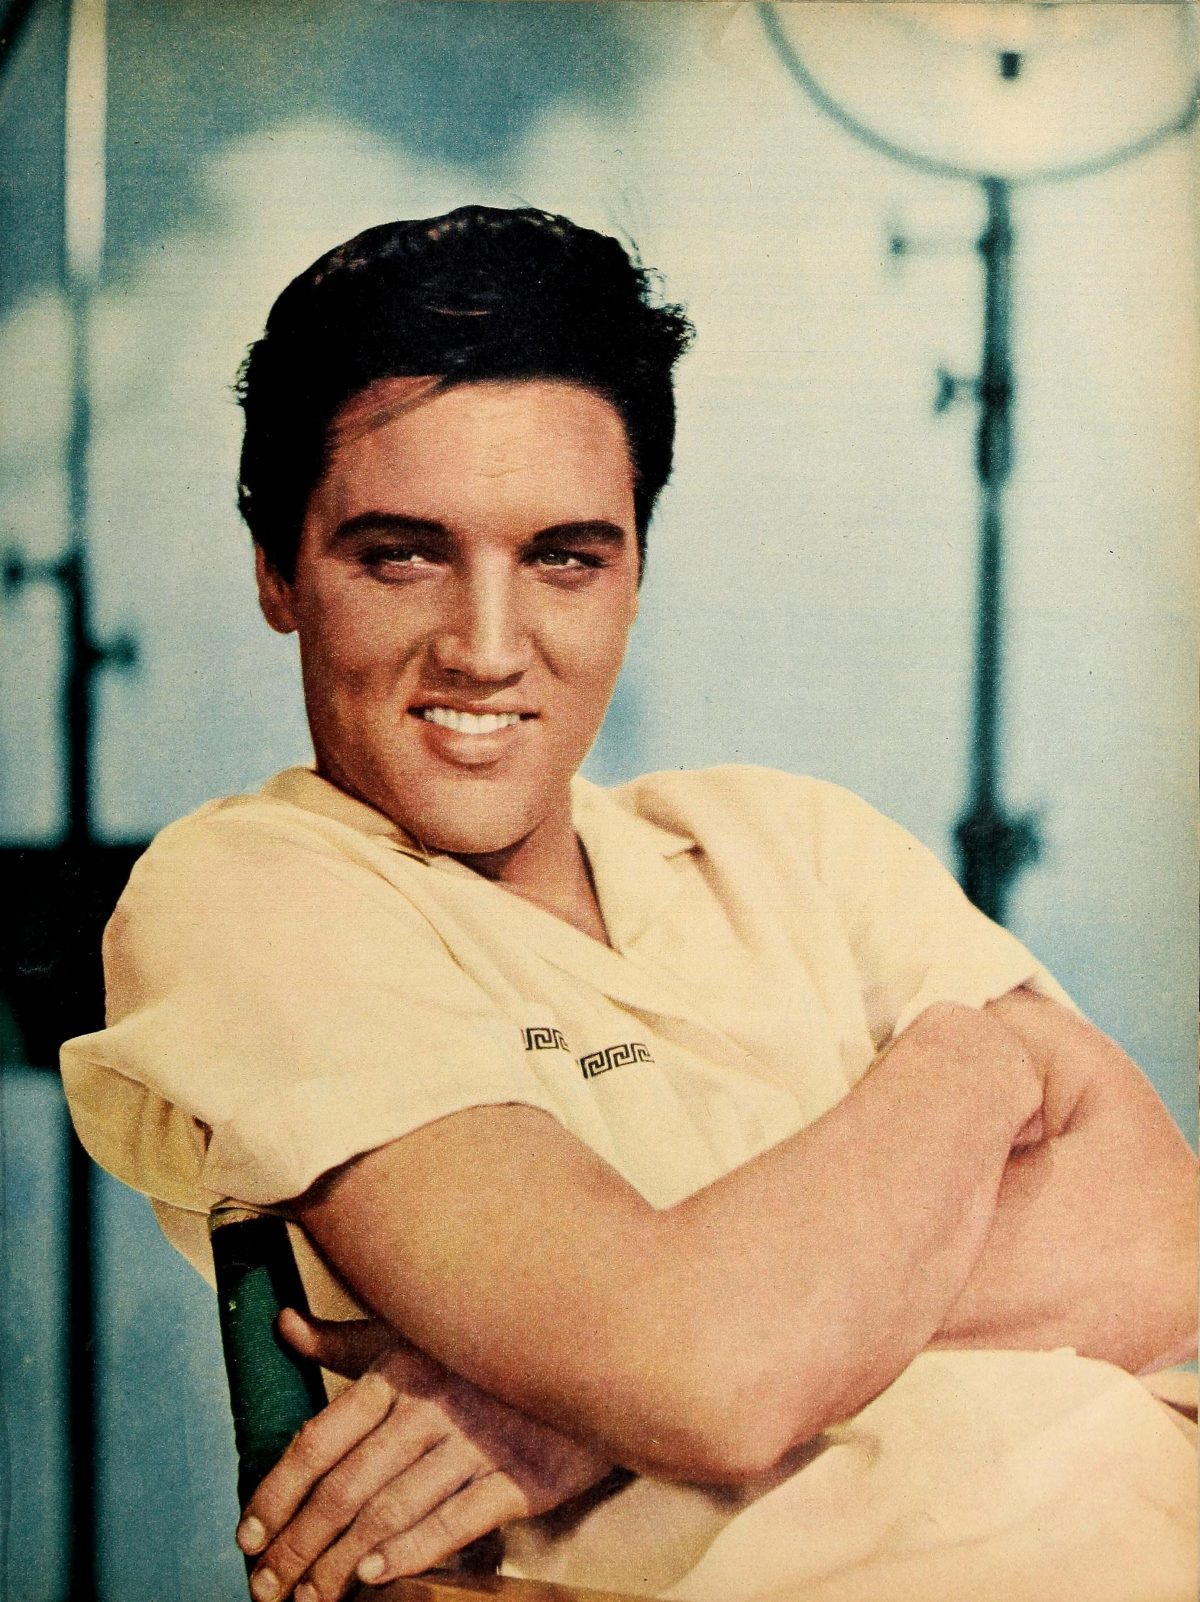 Elvis Presley Older songs like Heartbreak Hotel & Hound Dog are still some of the best music ever made. Elvis fans are still loving The King. Elvis Presley when he was young